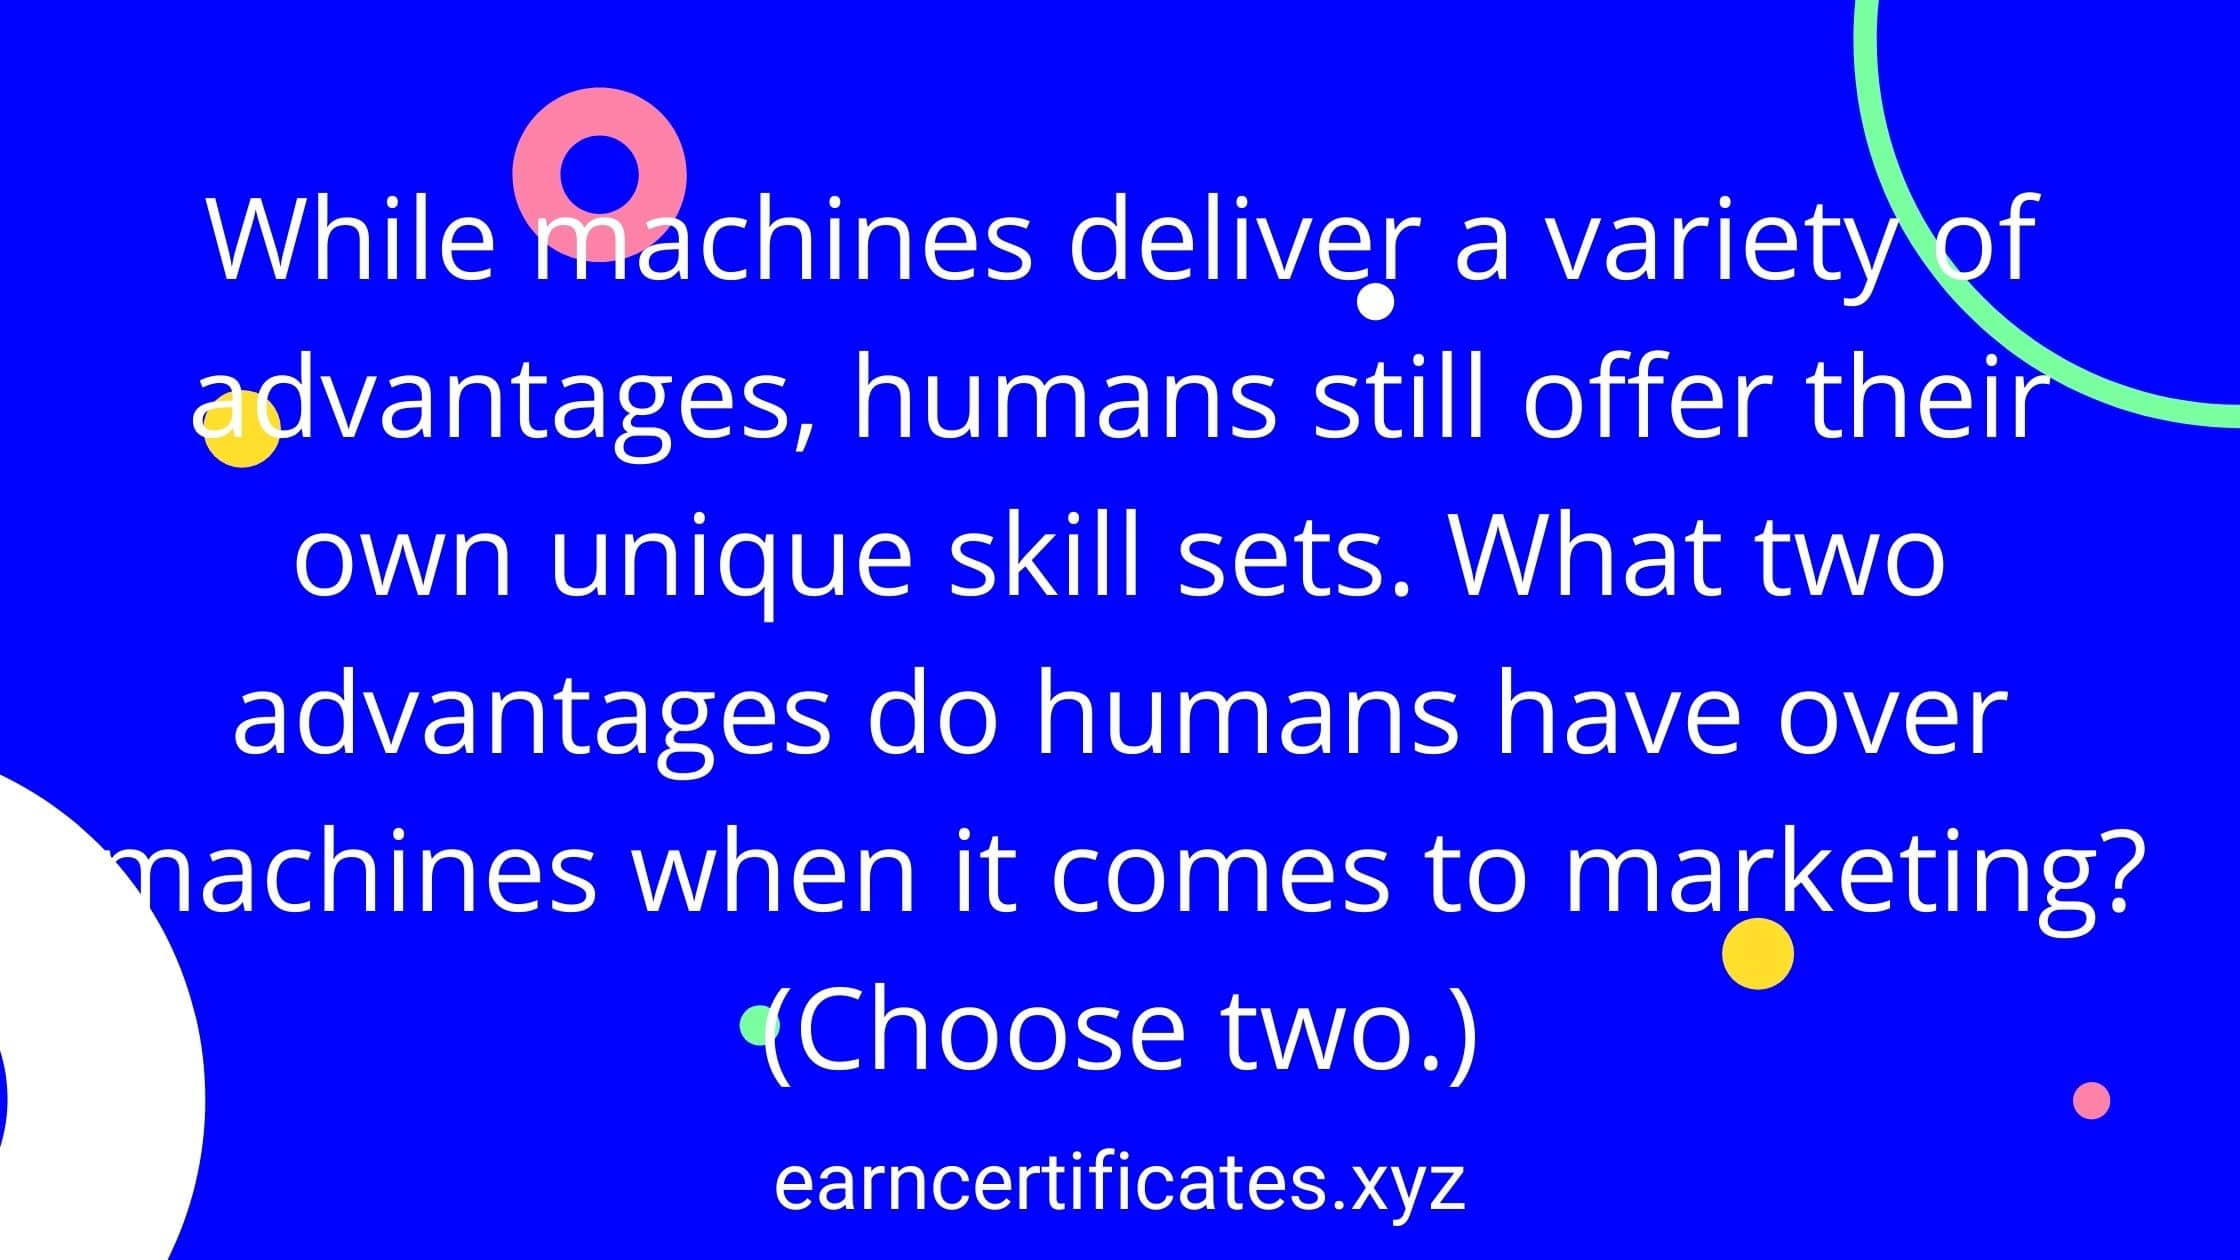 While machines deliver a variety of advantages, humans still offer their own unique skill sets. What two advantages do humans have over machines when it comes to marketing?(Choose two.)